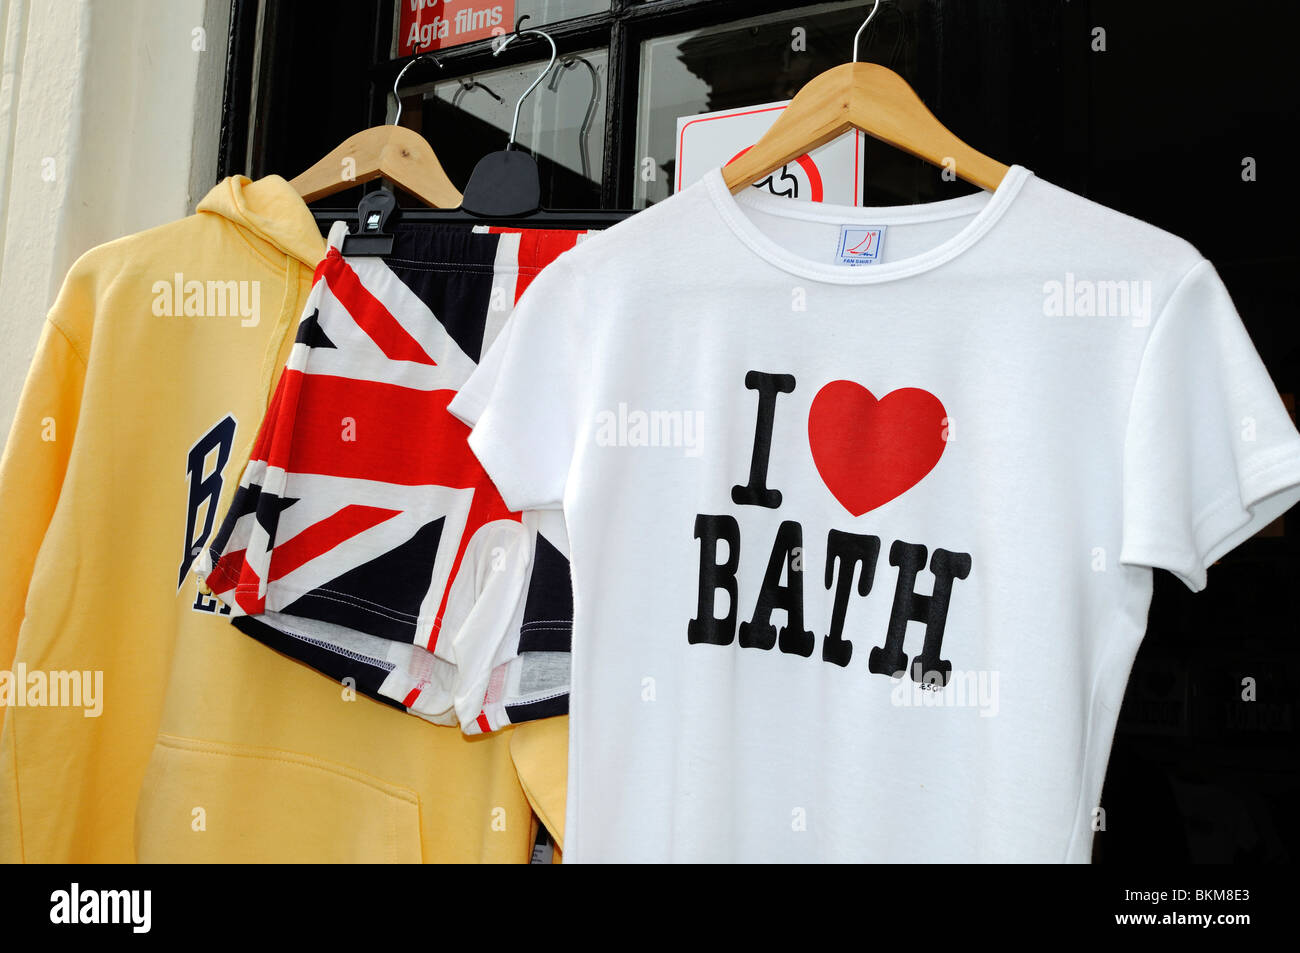 ' i love bath ' tee shirt hanging outside a shop in bath, england, uk - Stock Image